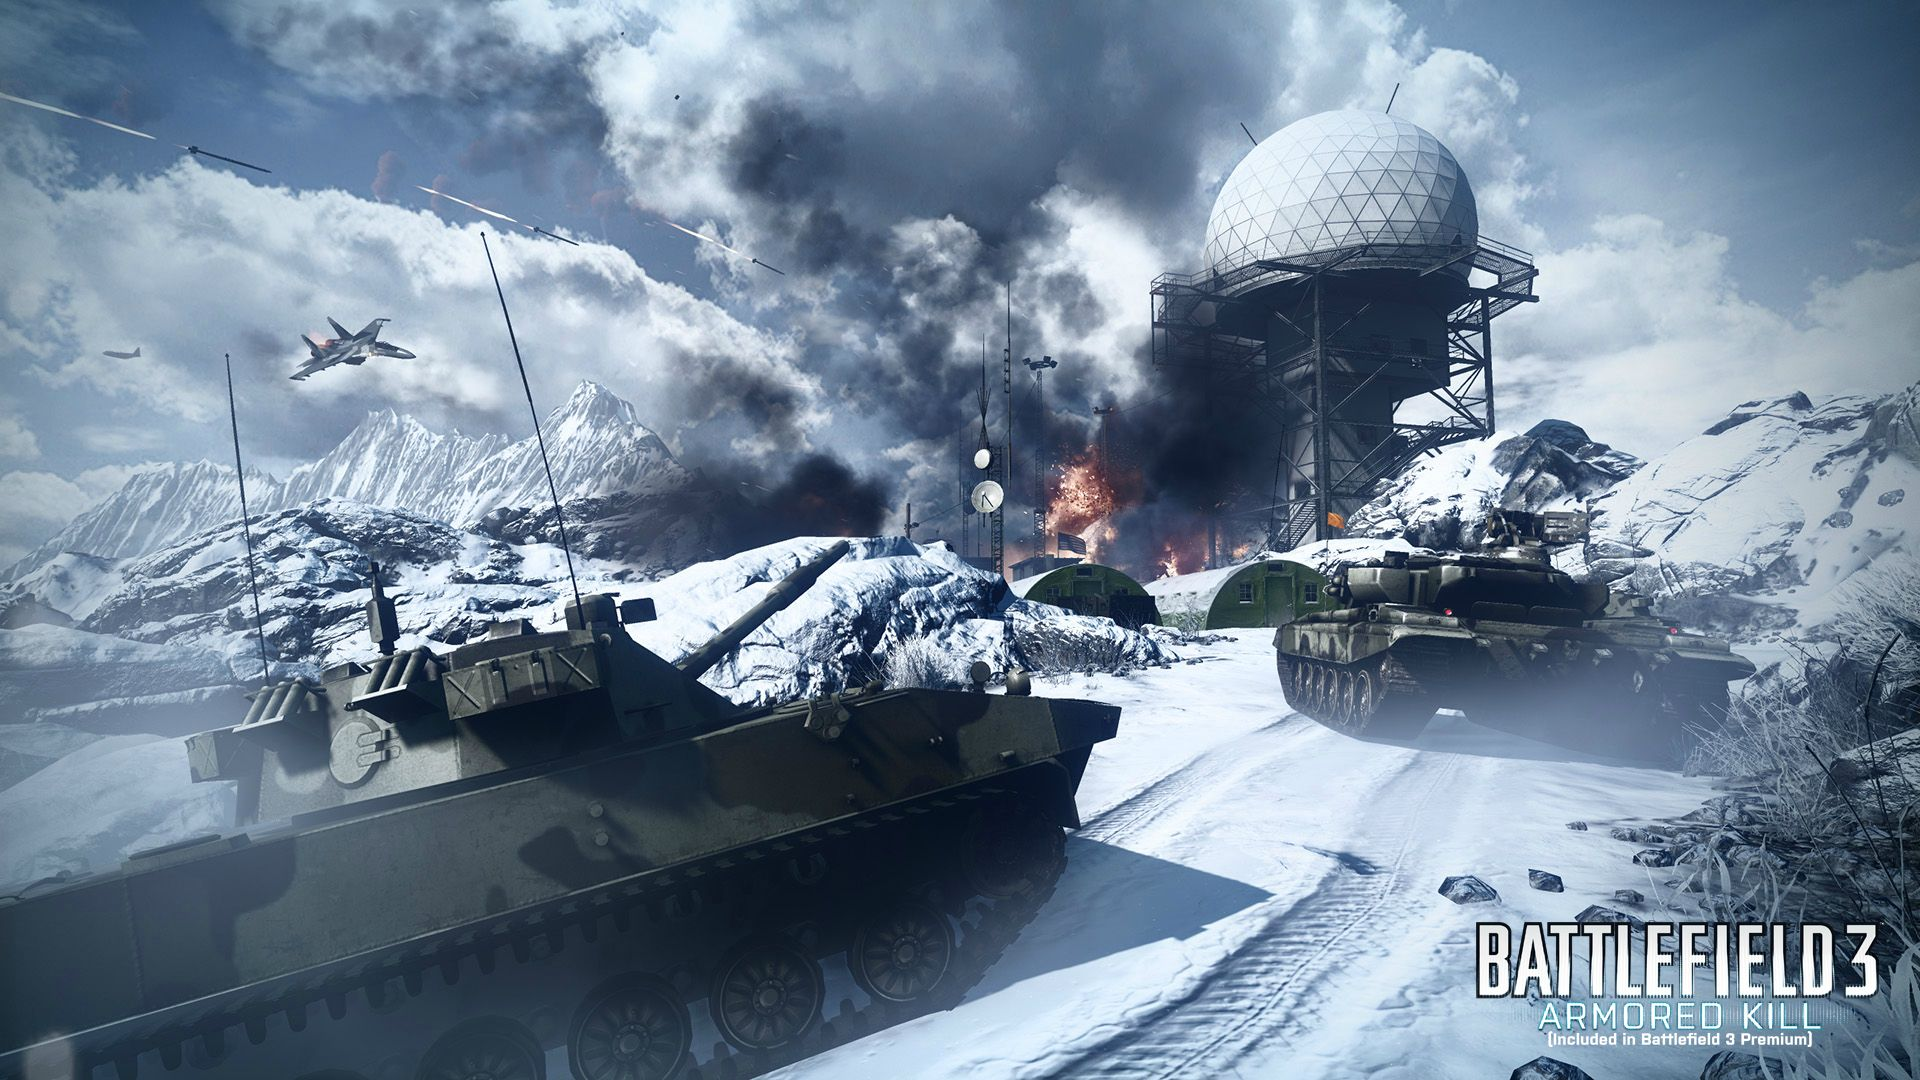 Battlefield 3: Armored Kill (Foto: Divulgao)